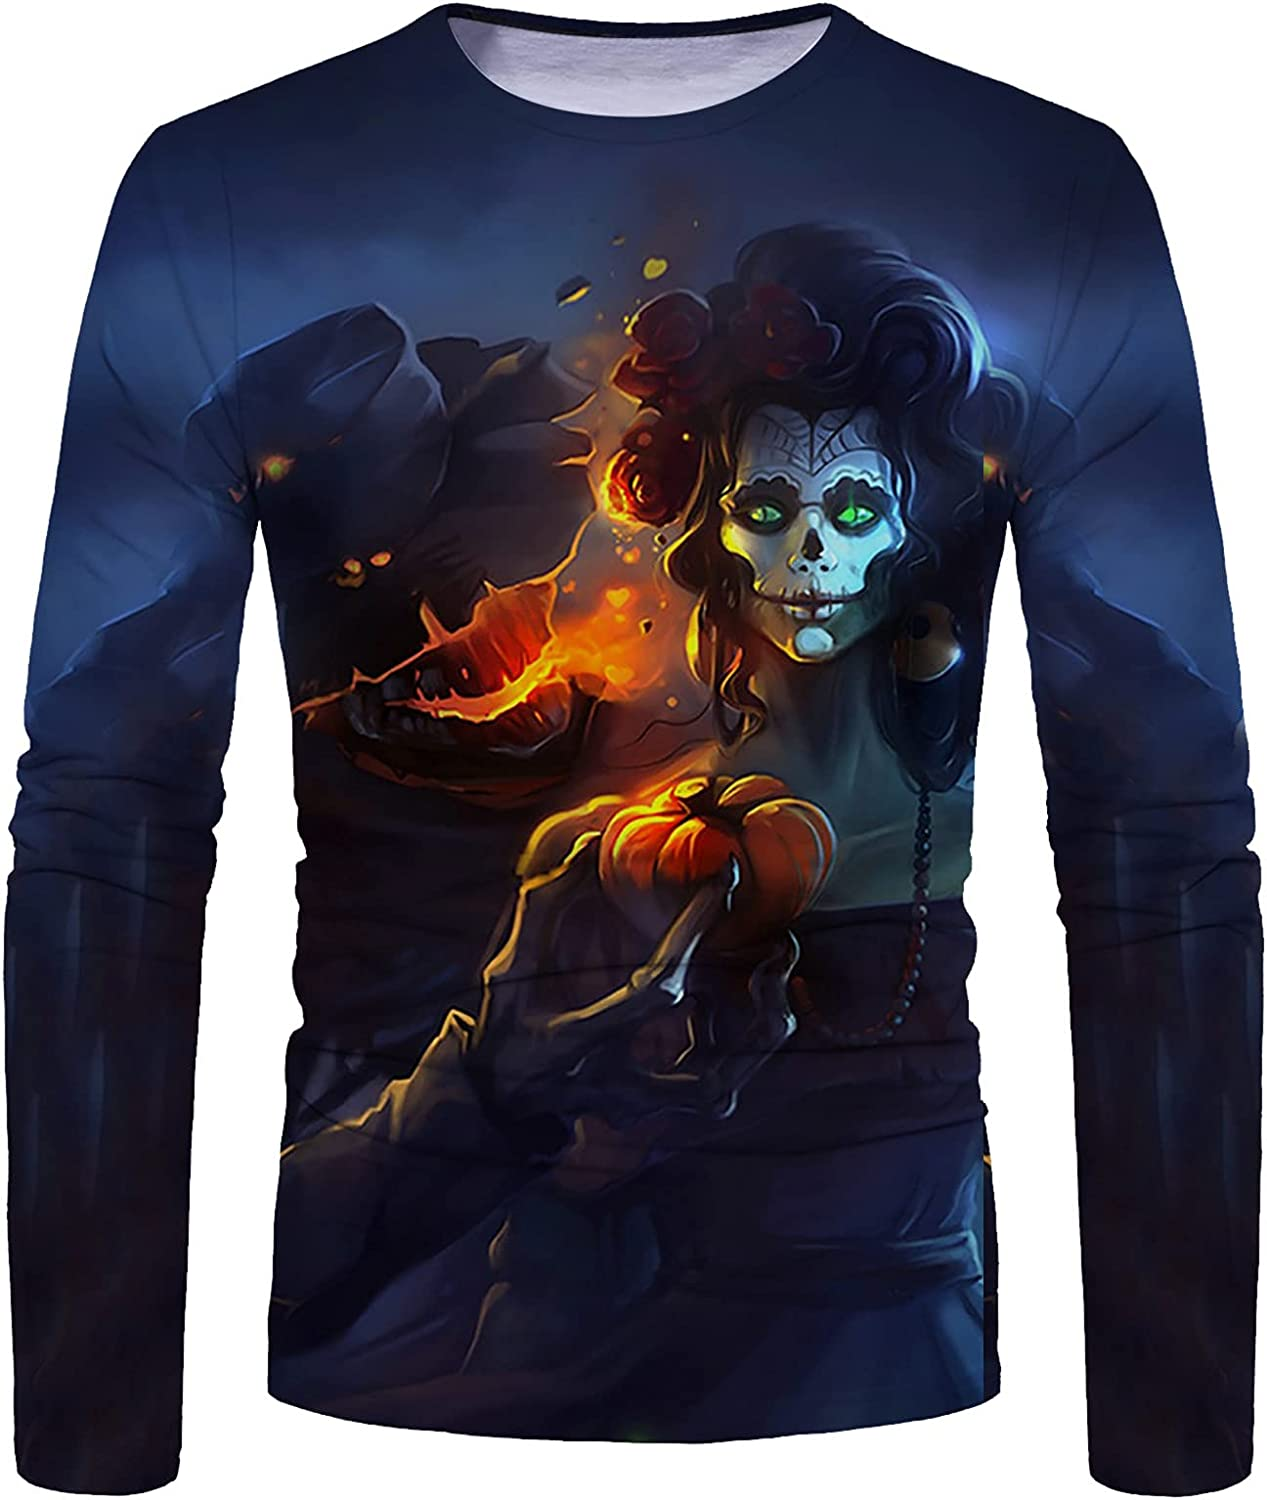 WOCACHI Halloween Soldier Long Sleeve T-shirts for Mens, Funny Pumpkin Black Cat Bat Print Casual Athletic Tee Tops